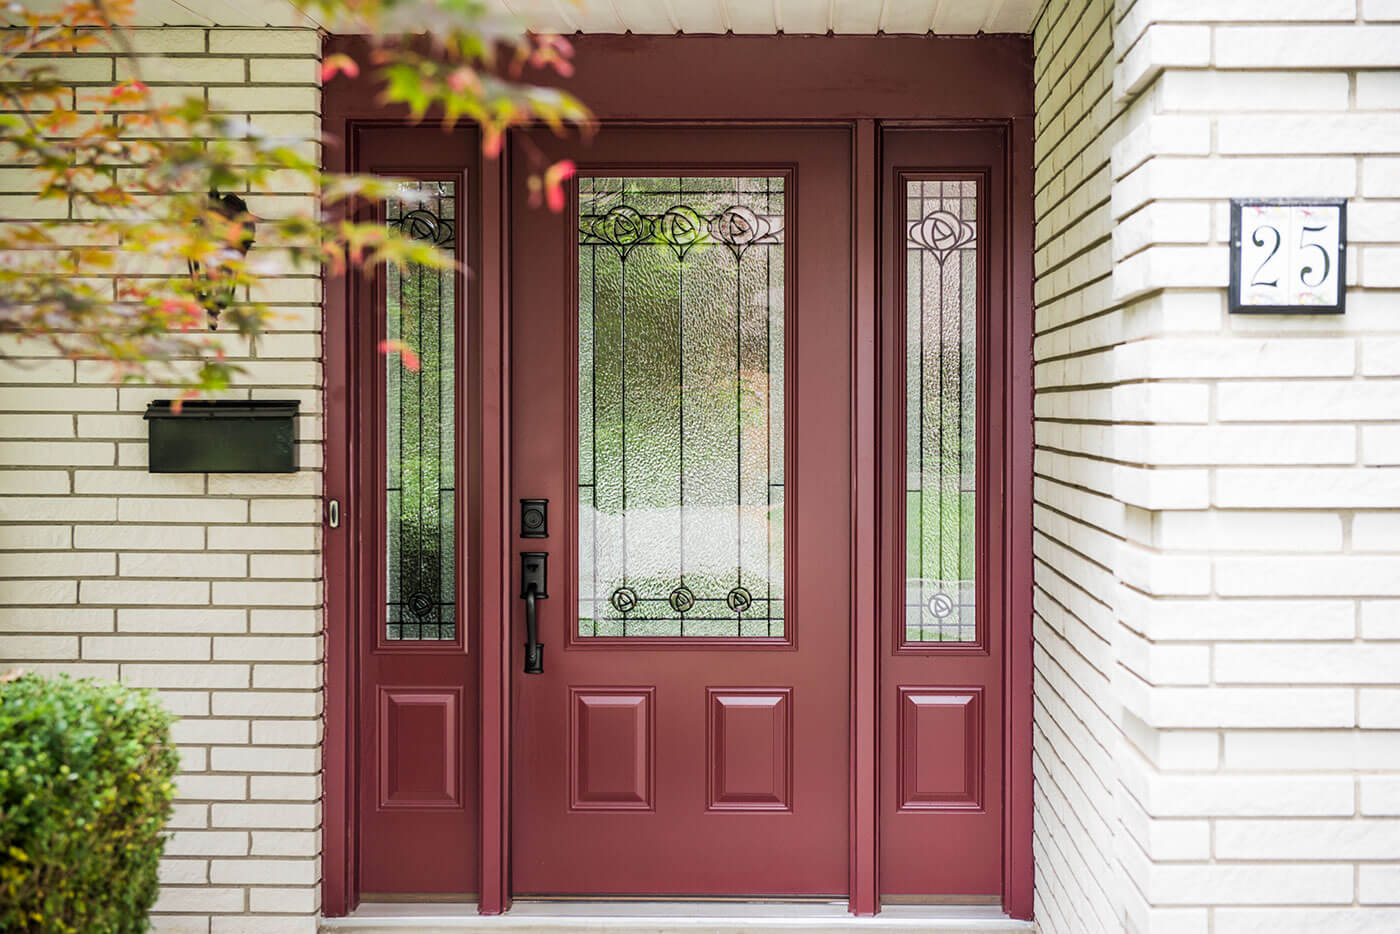 Steel Entry Door System Custom Manufactured in a Dark Red Colour With a Glass Window